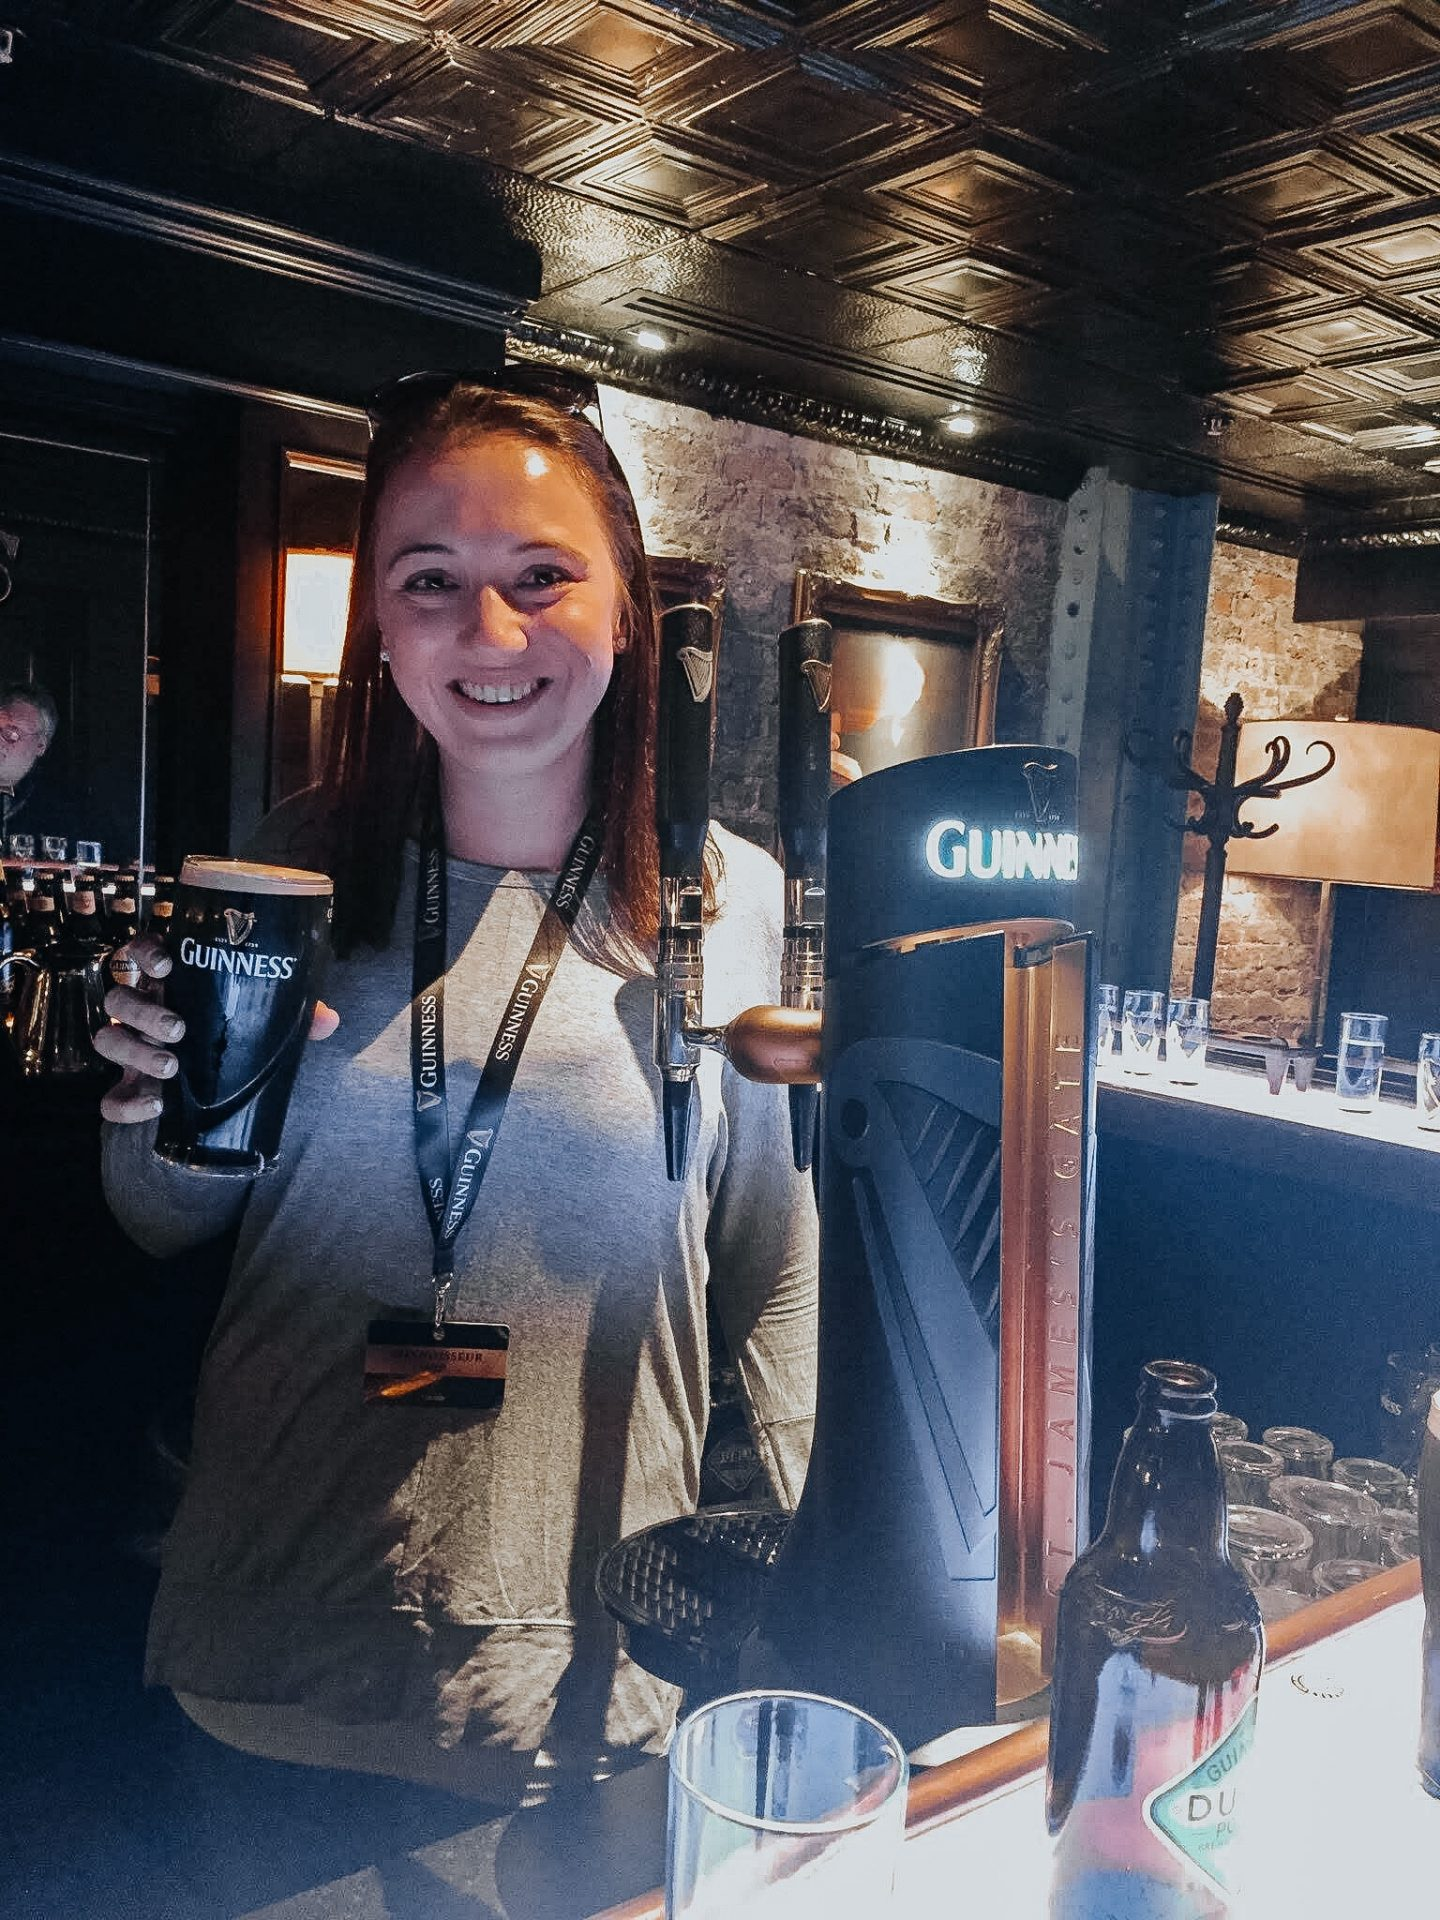 Woman standing in a beer bar in Dublin Ireland Europe holding a full pint of Guinness beer she just poured from the tap next to her holding it up smiling.